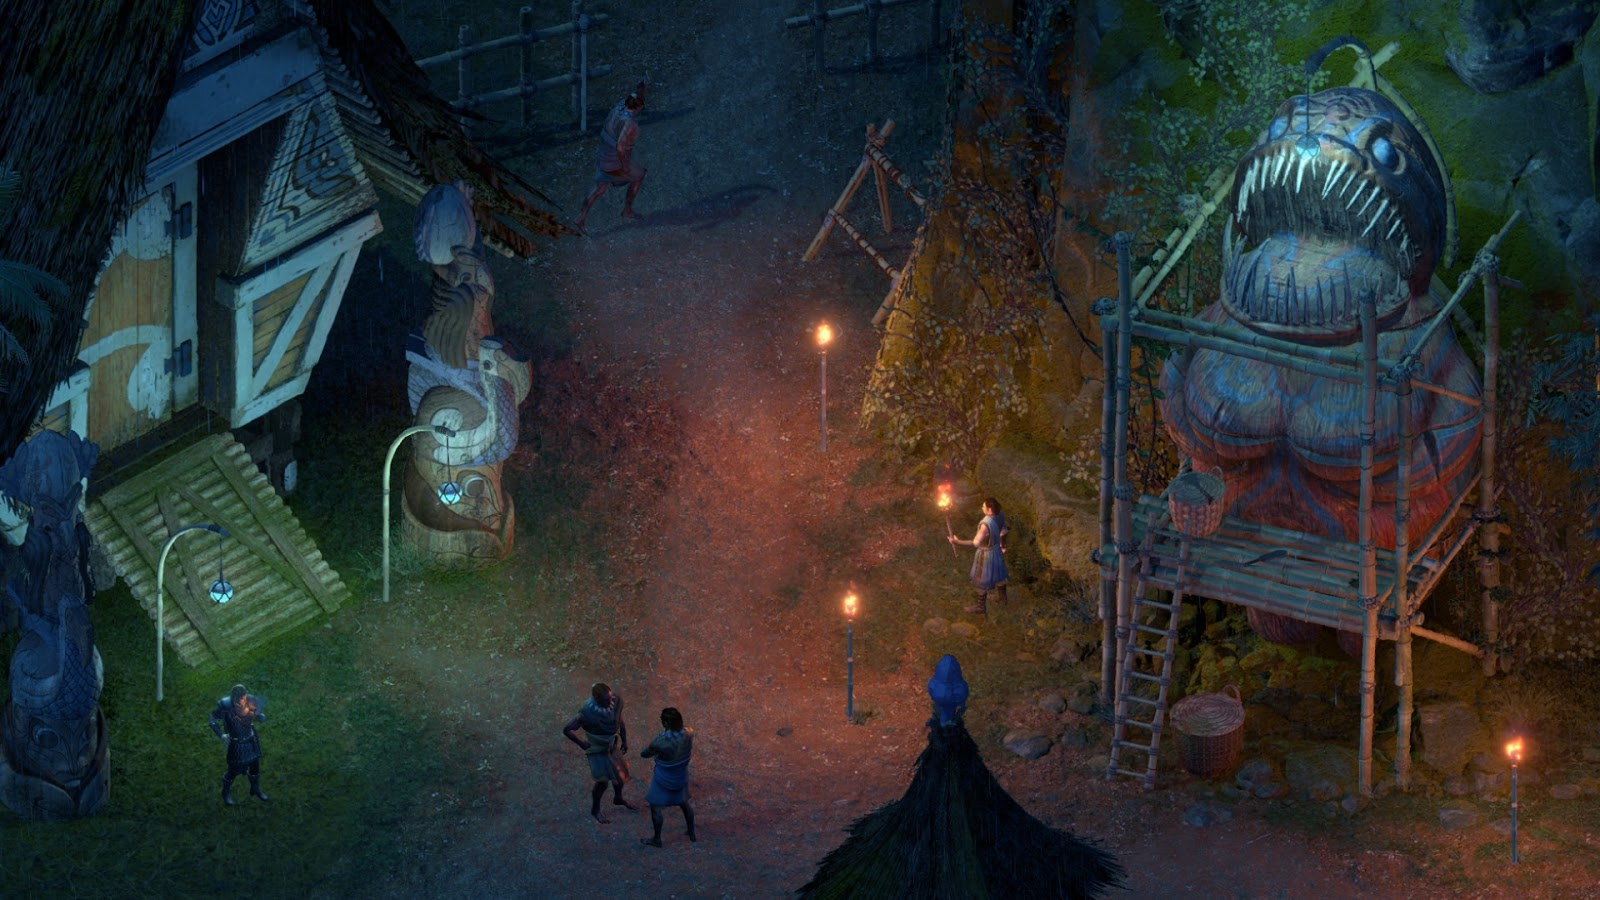 Pillars Of Eternity Wallpaper: Save Pillars Of Eternity 2 Deadfire HD Wallpapers